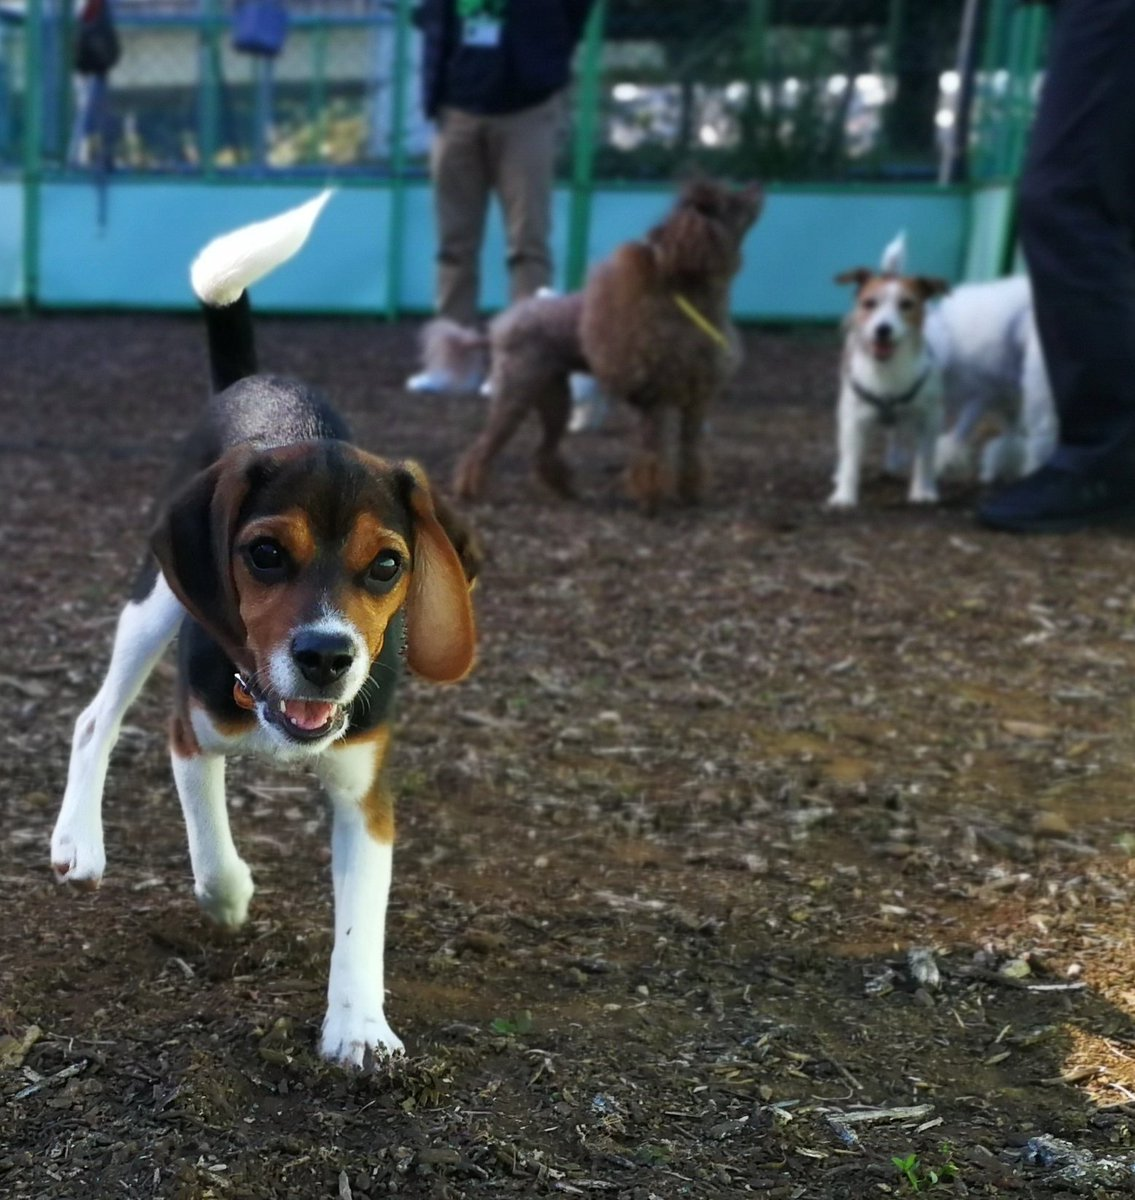 played with friends every morning during 3 day holiday 🐾   #dogparkfun #dogrun #dogsofinstagram #doglife #beaglepuppy #beagledog #beagleoftheday #beaglegang #beaglegirl #puppytime #hello #inu